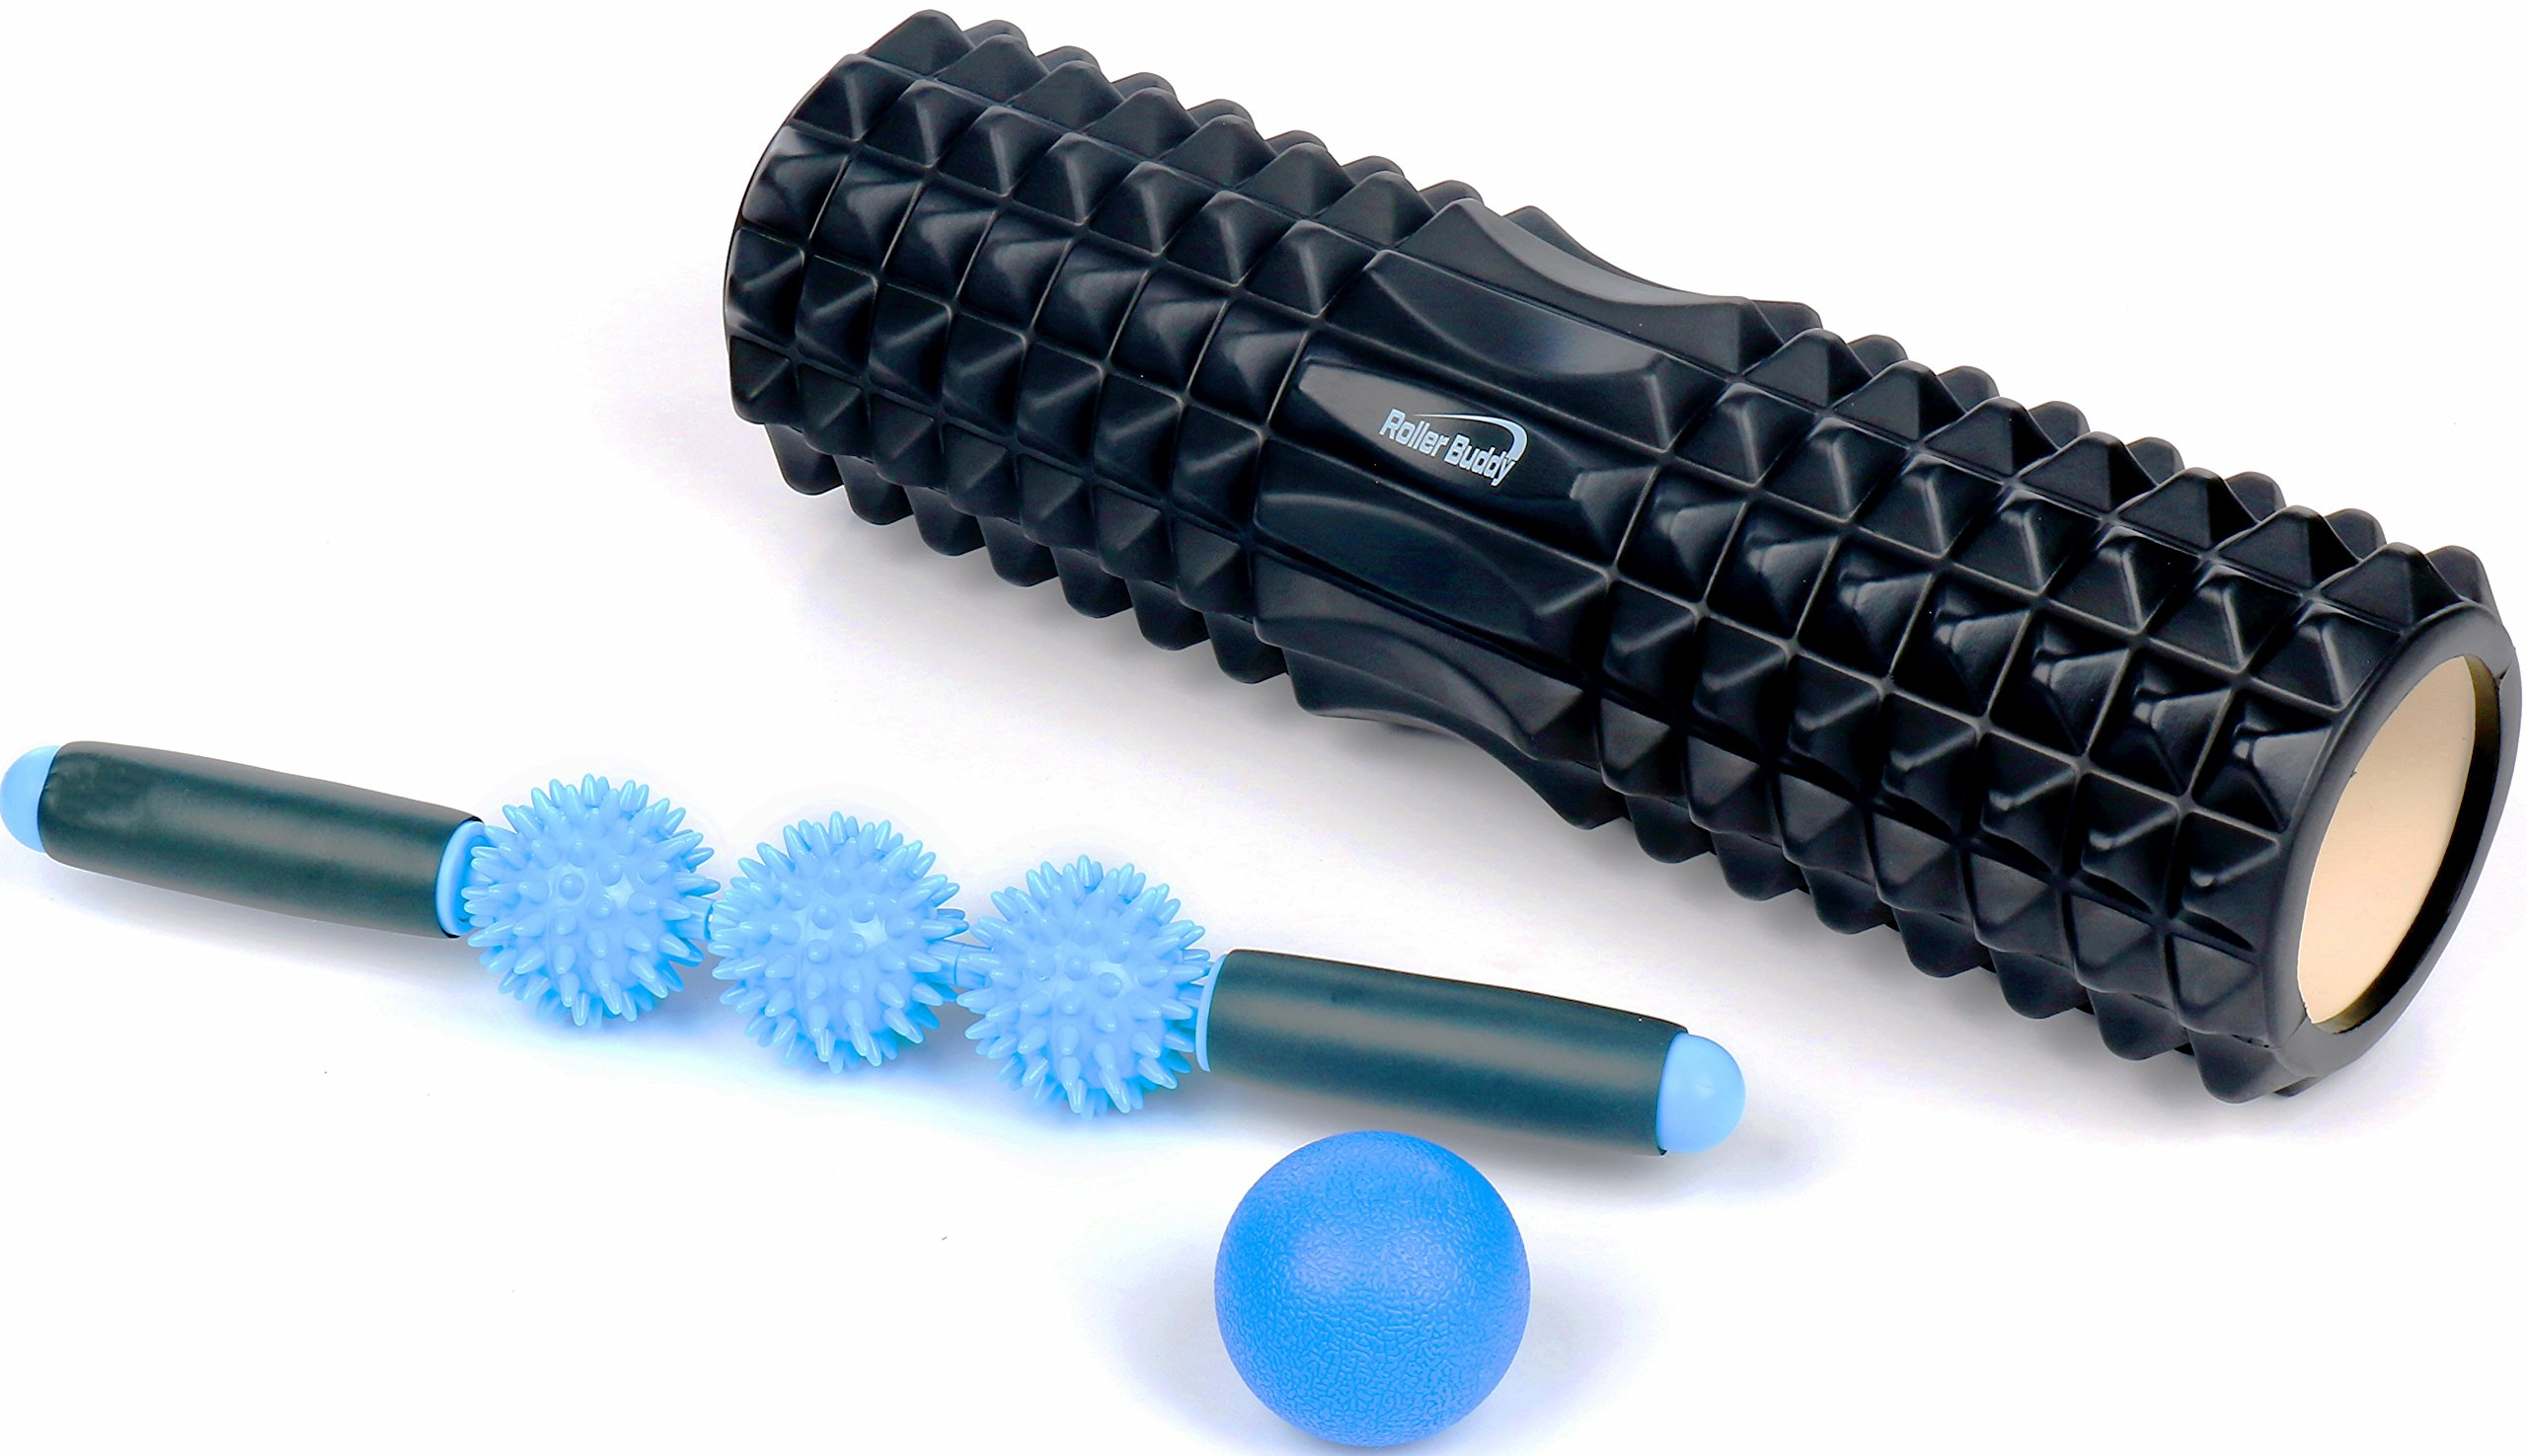 Muscle Massage Foam Roller Kit Back Massager Roller - 4 in 1 Best Trigger Point Massage Tool Lacrosse Roller Ball Massager Stick